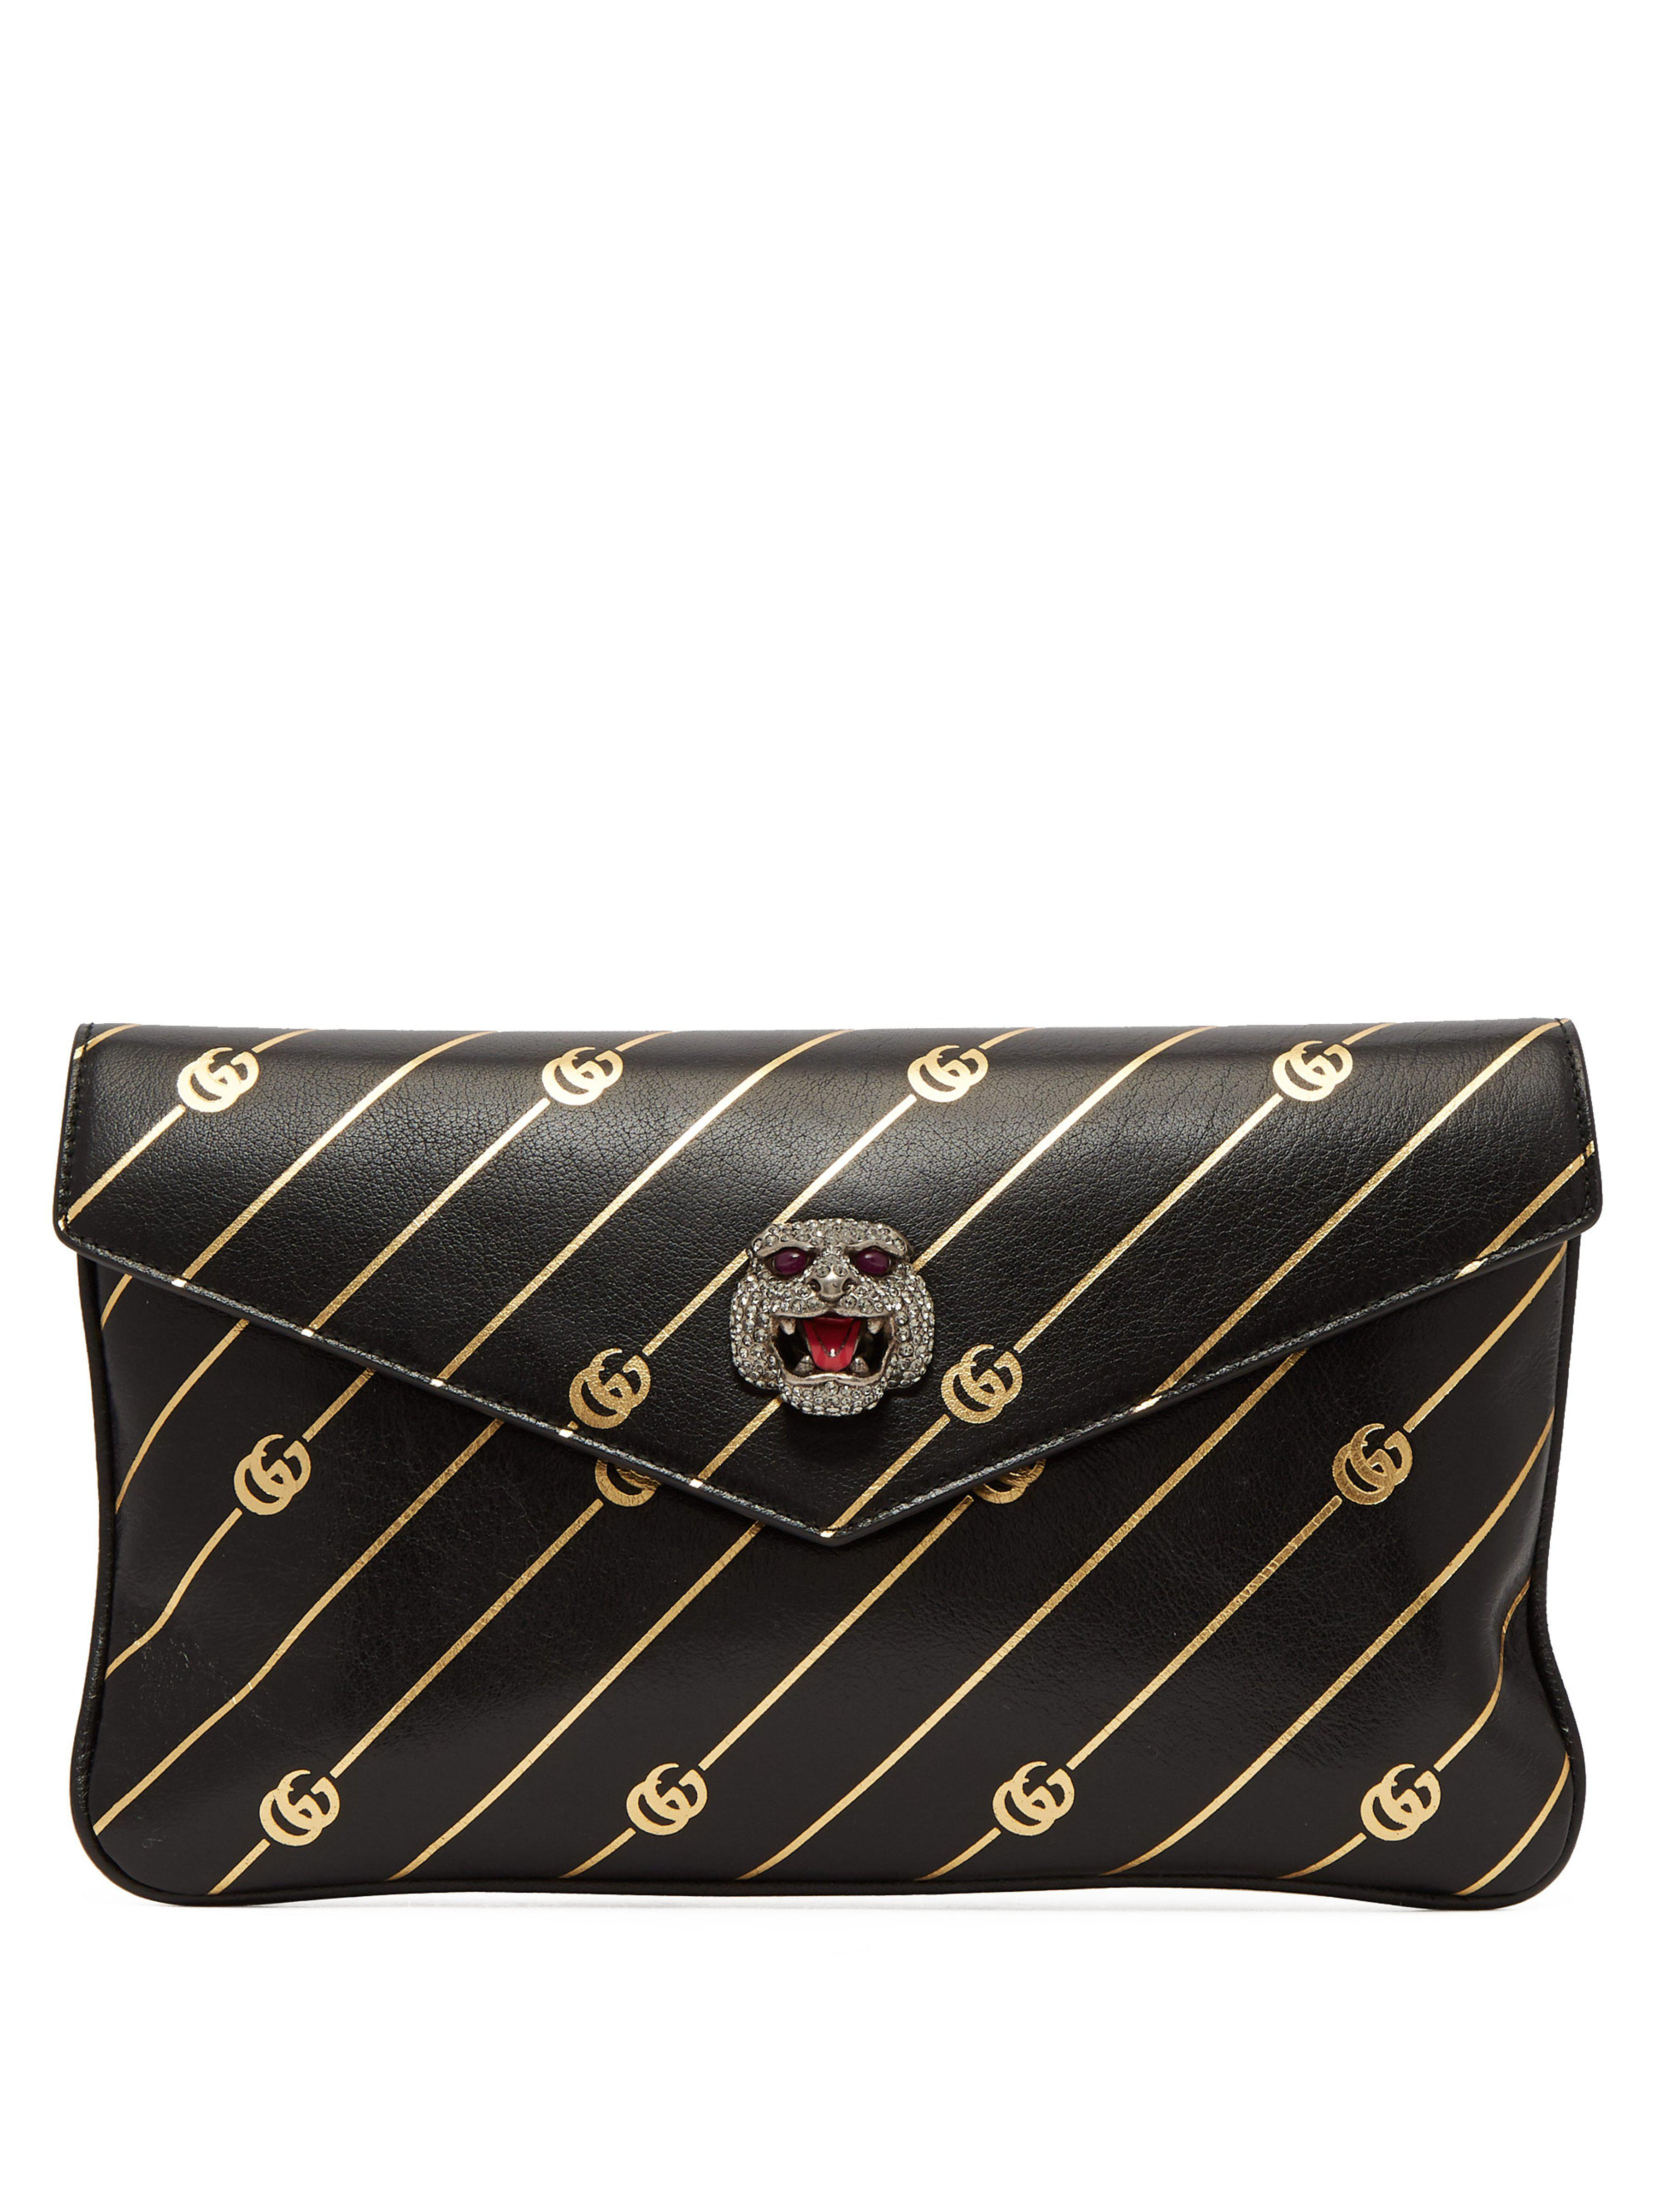 95ad28e234b Gucci Broadway GG-embossed Leather Clutch in Black - Lyst